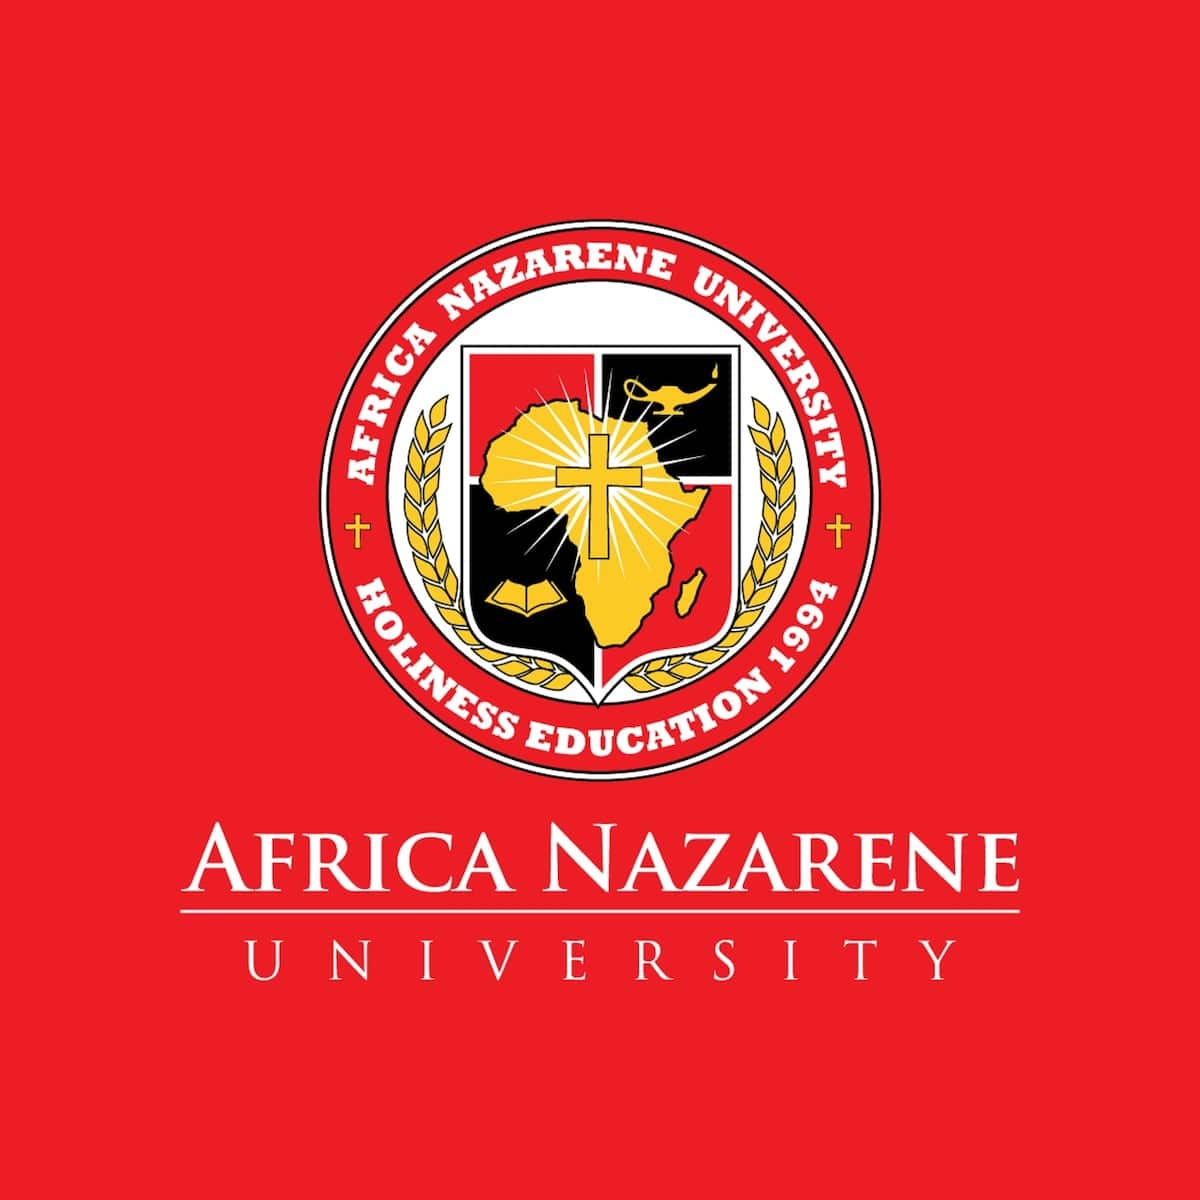 Africa Nazarene University contacts, contacts of Nazarene University, Africa Nazarene University phone numbers